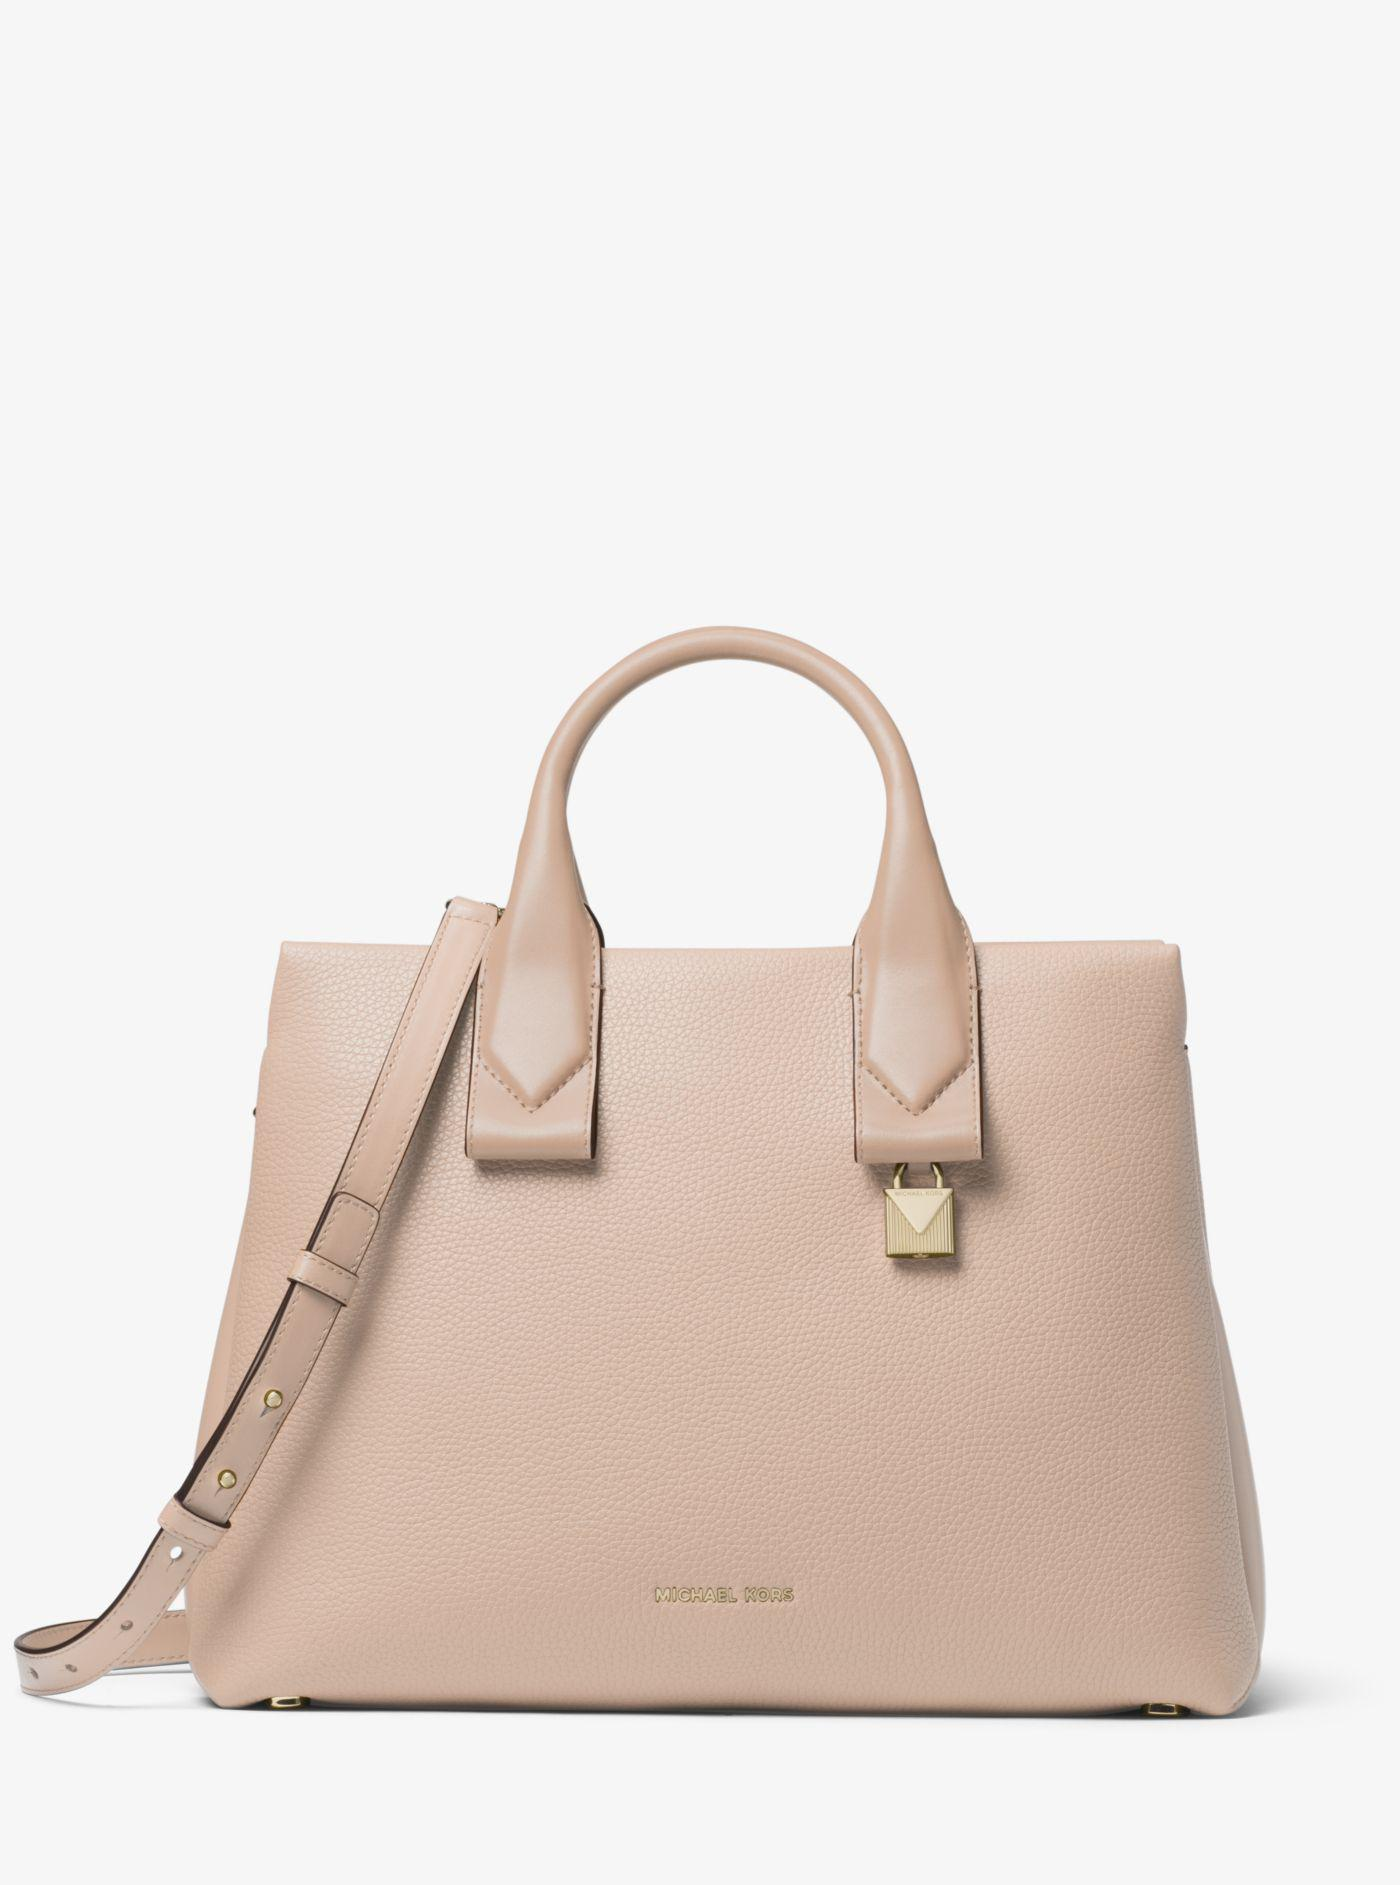 84601c500246 Lyst - Michael Kors Rollins Large Pebbled Leather Satchel in Pink